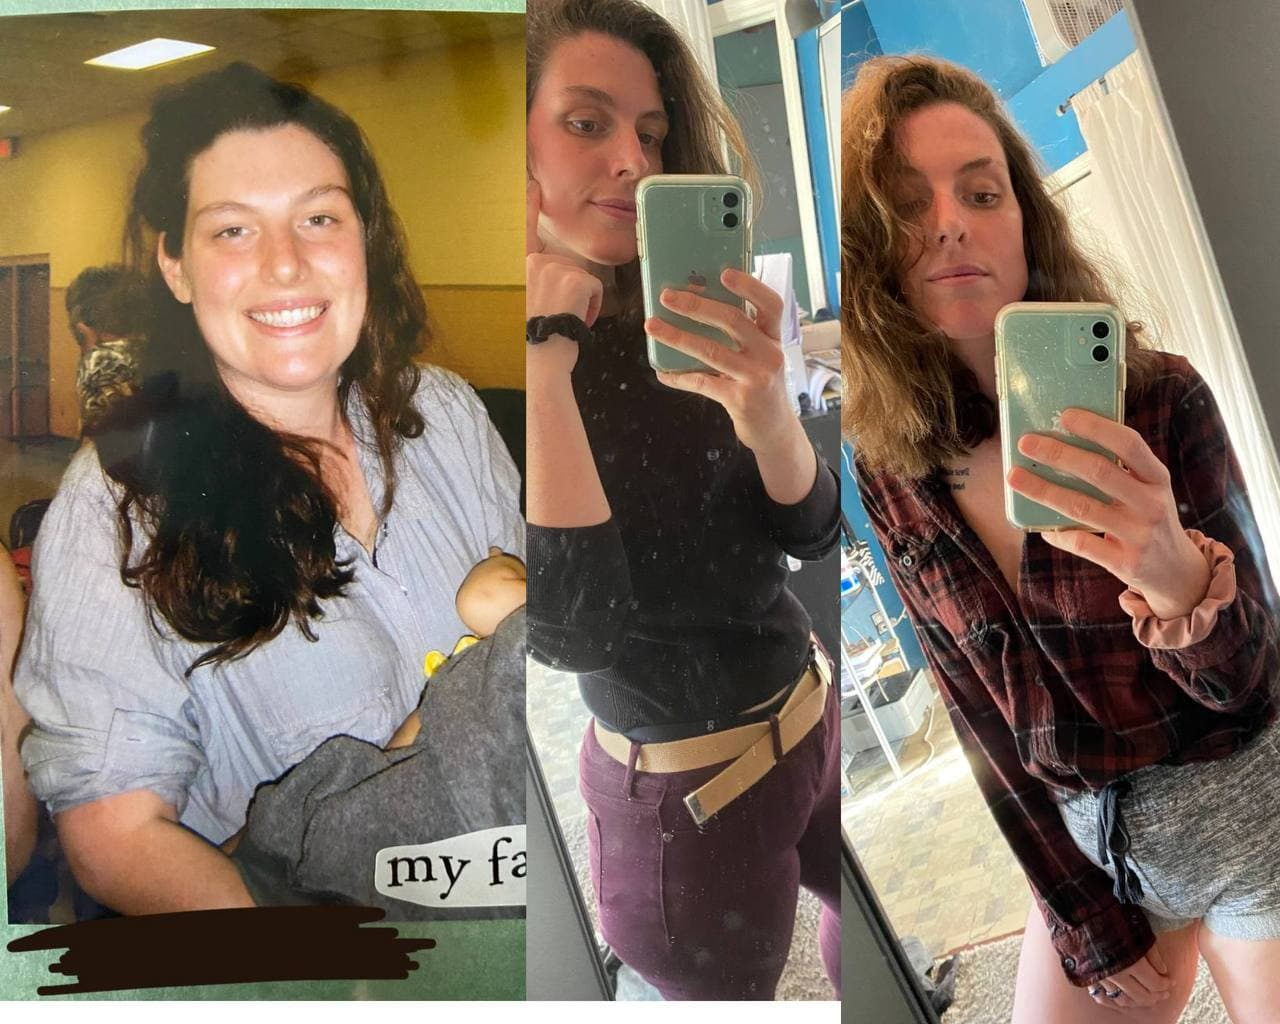 85 lbs Weight Loss Before and After 5'11 Female 240 lbs to 155 lbs